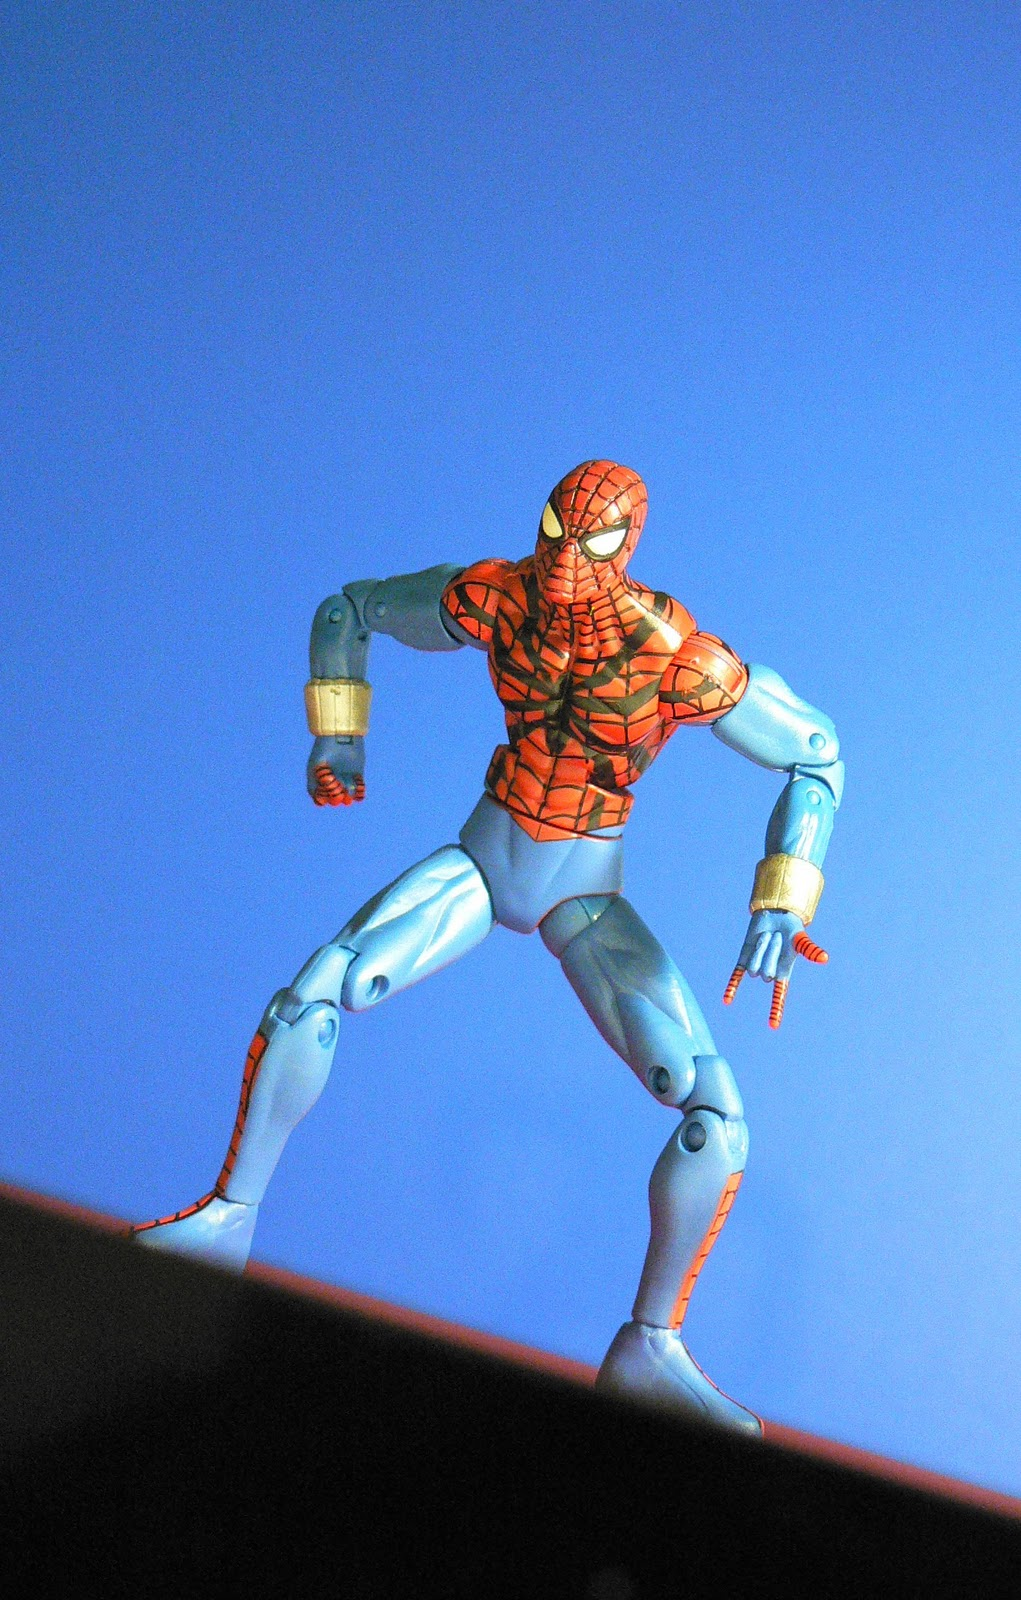 lego scarlet spider decals - photo #18